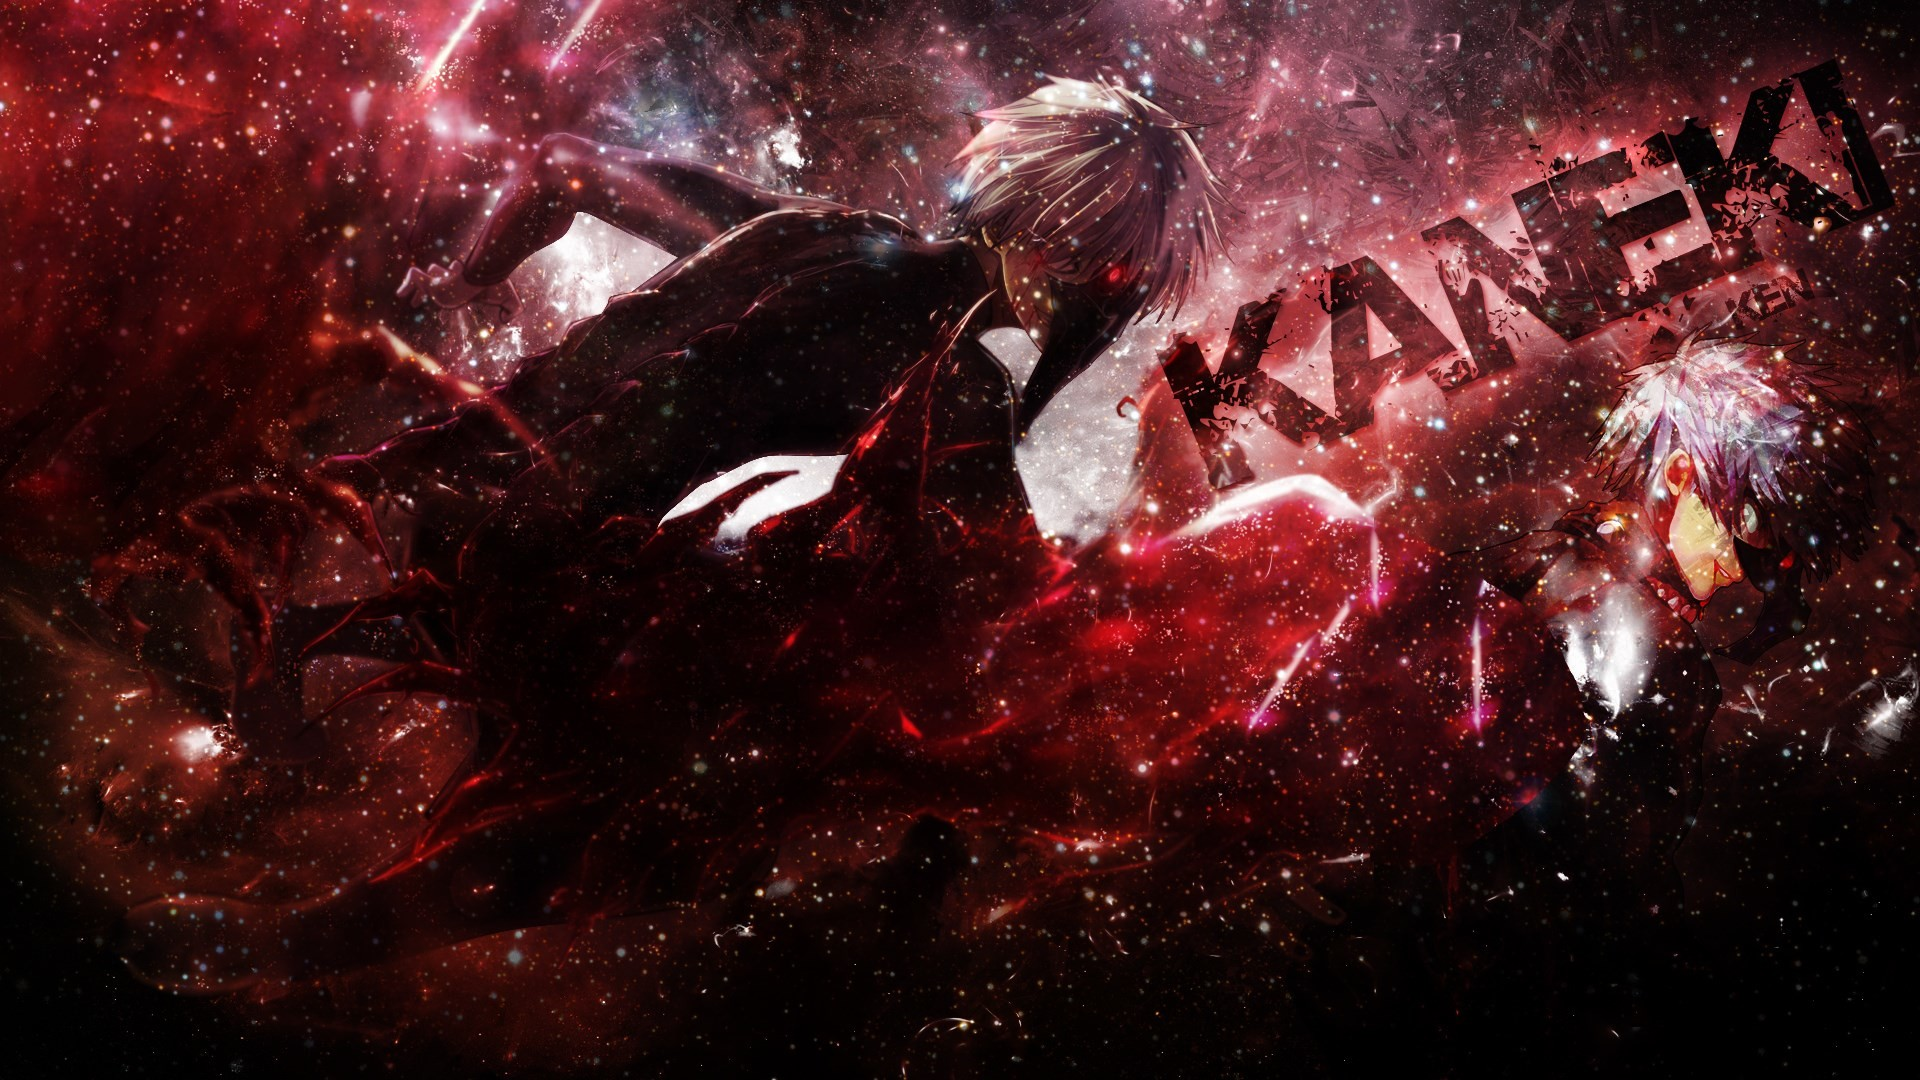 2017-03-02 – tokyo ghoul wallpaper – Background hd, #1415150